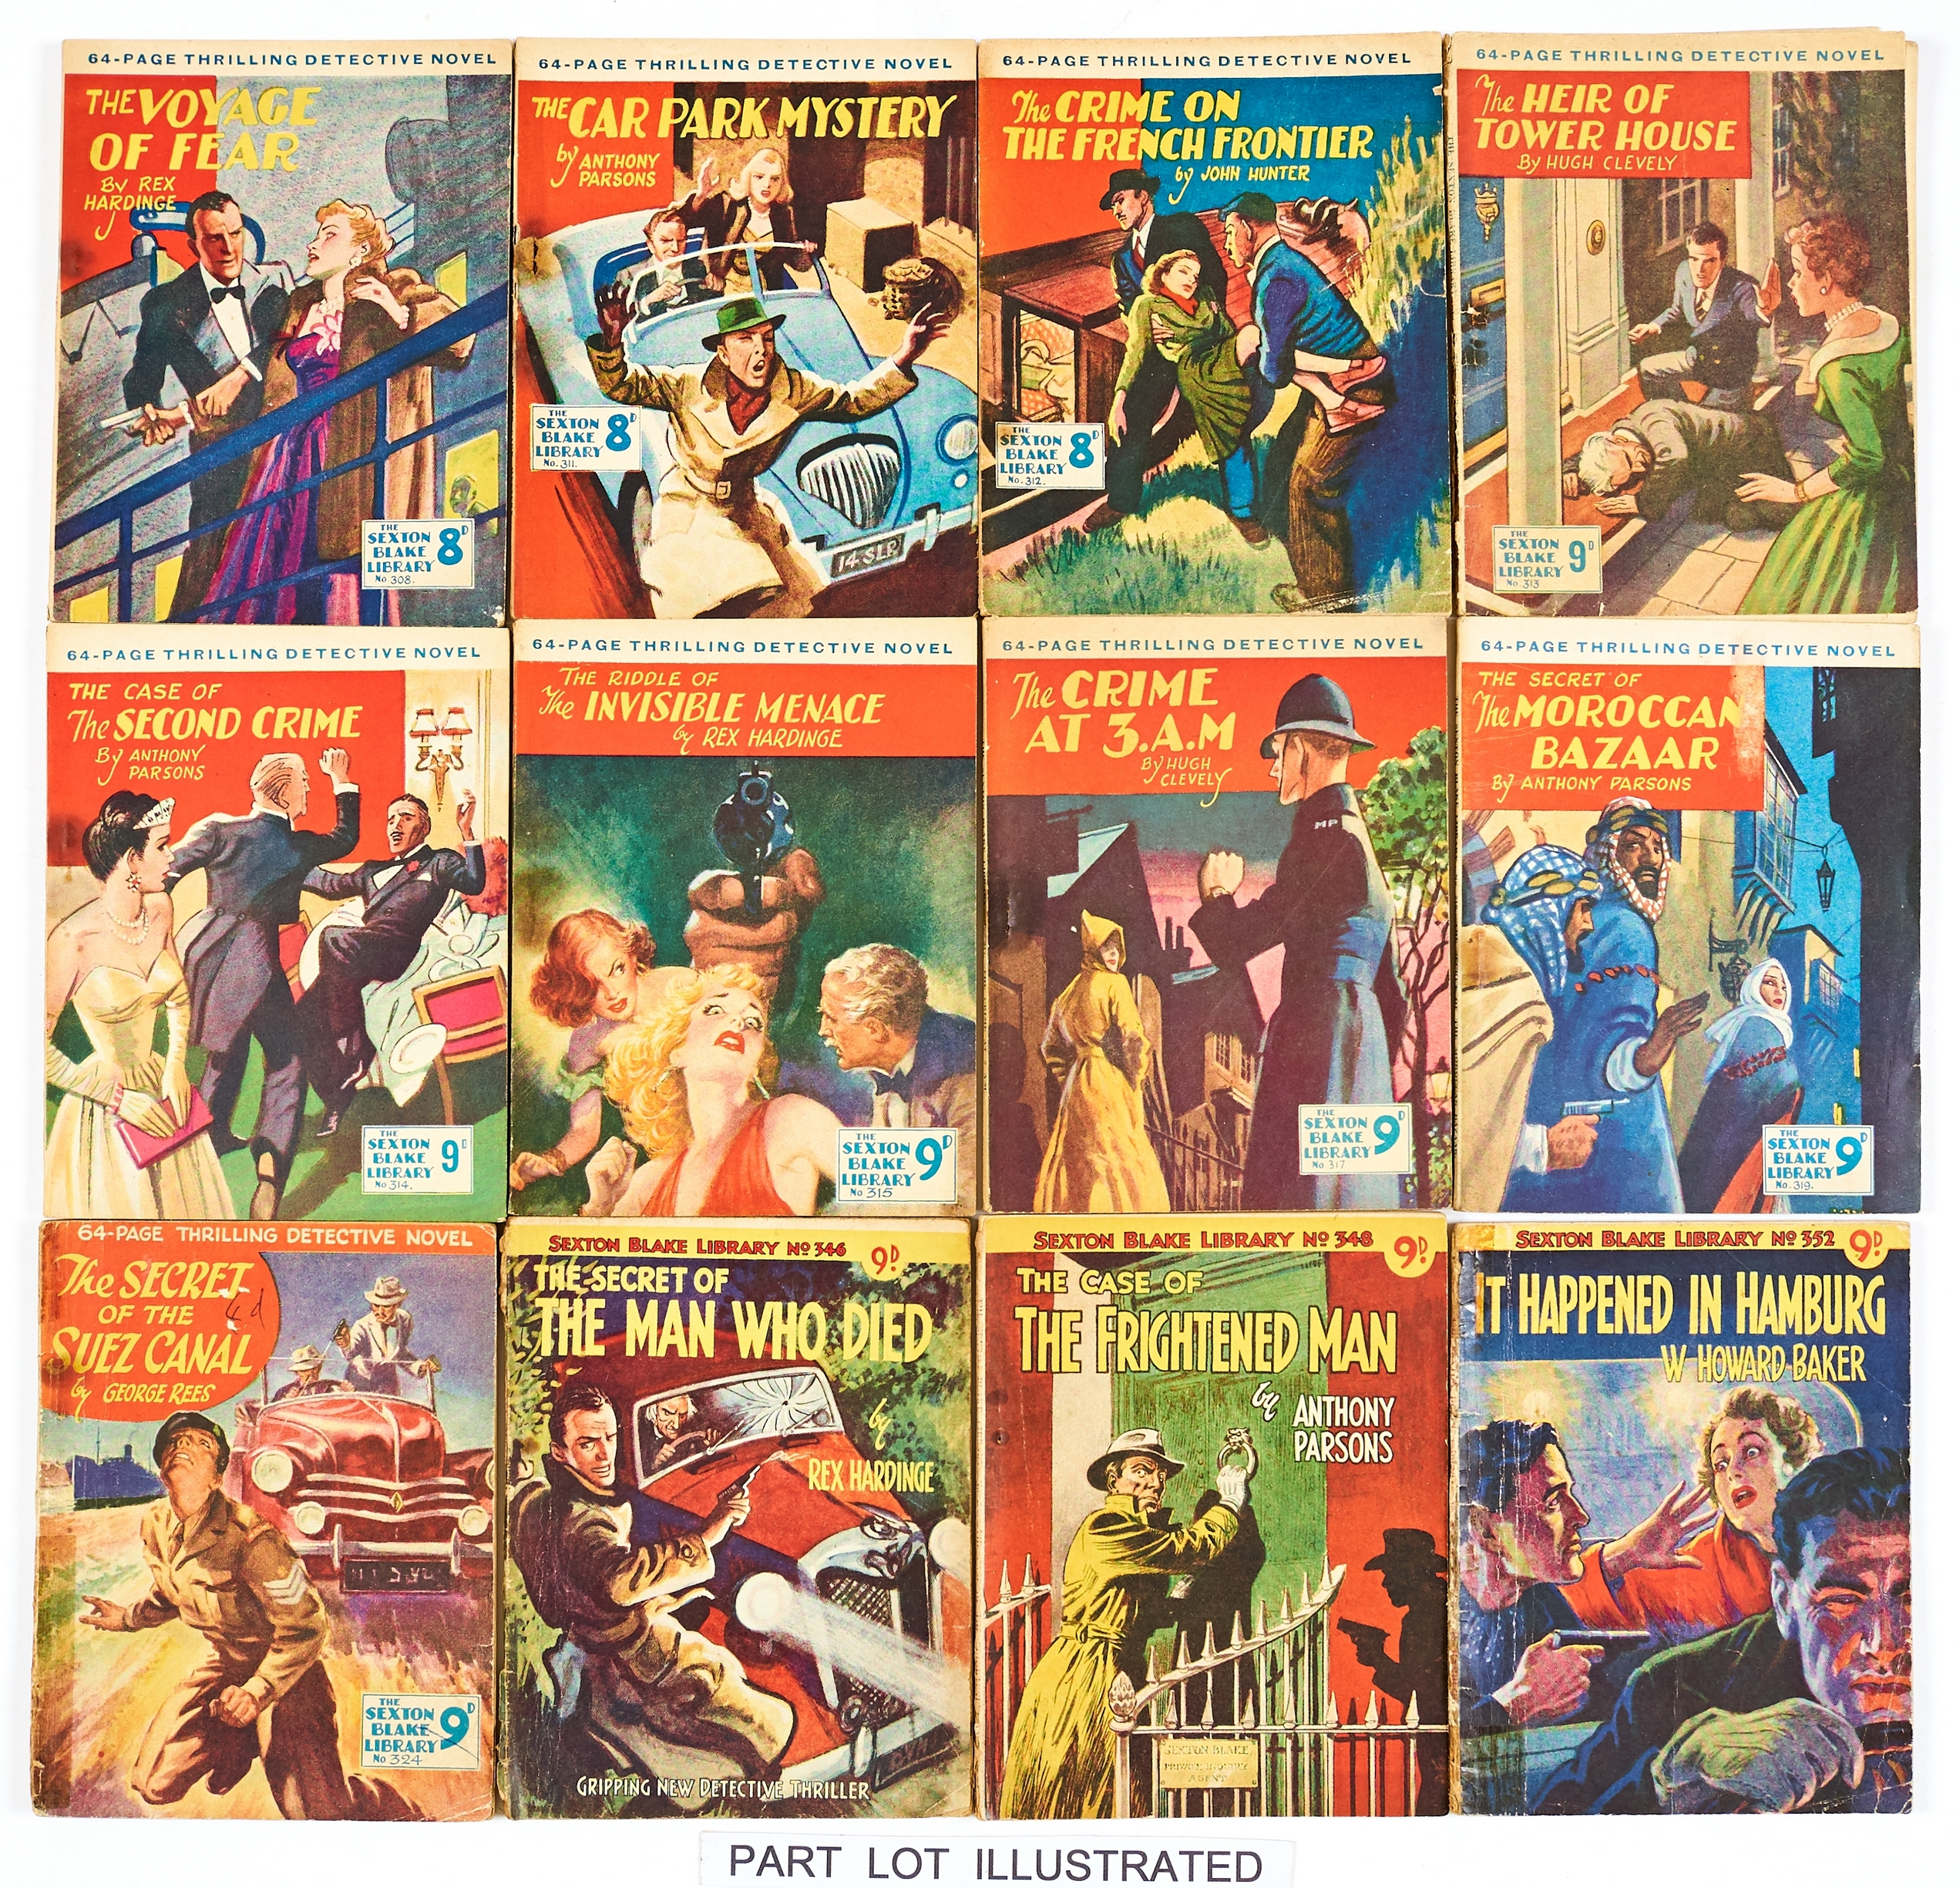 Lot 35 - Sexton Blake Library (1950s). 6 covers by Reginald Heade. 294, 297, 302 (x2), 304, 308, 310-315,